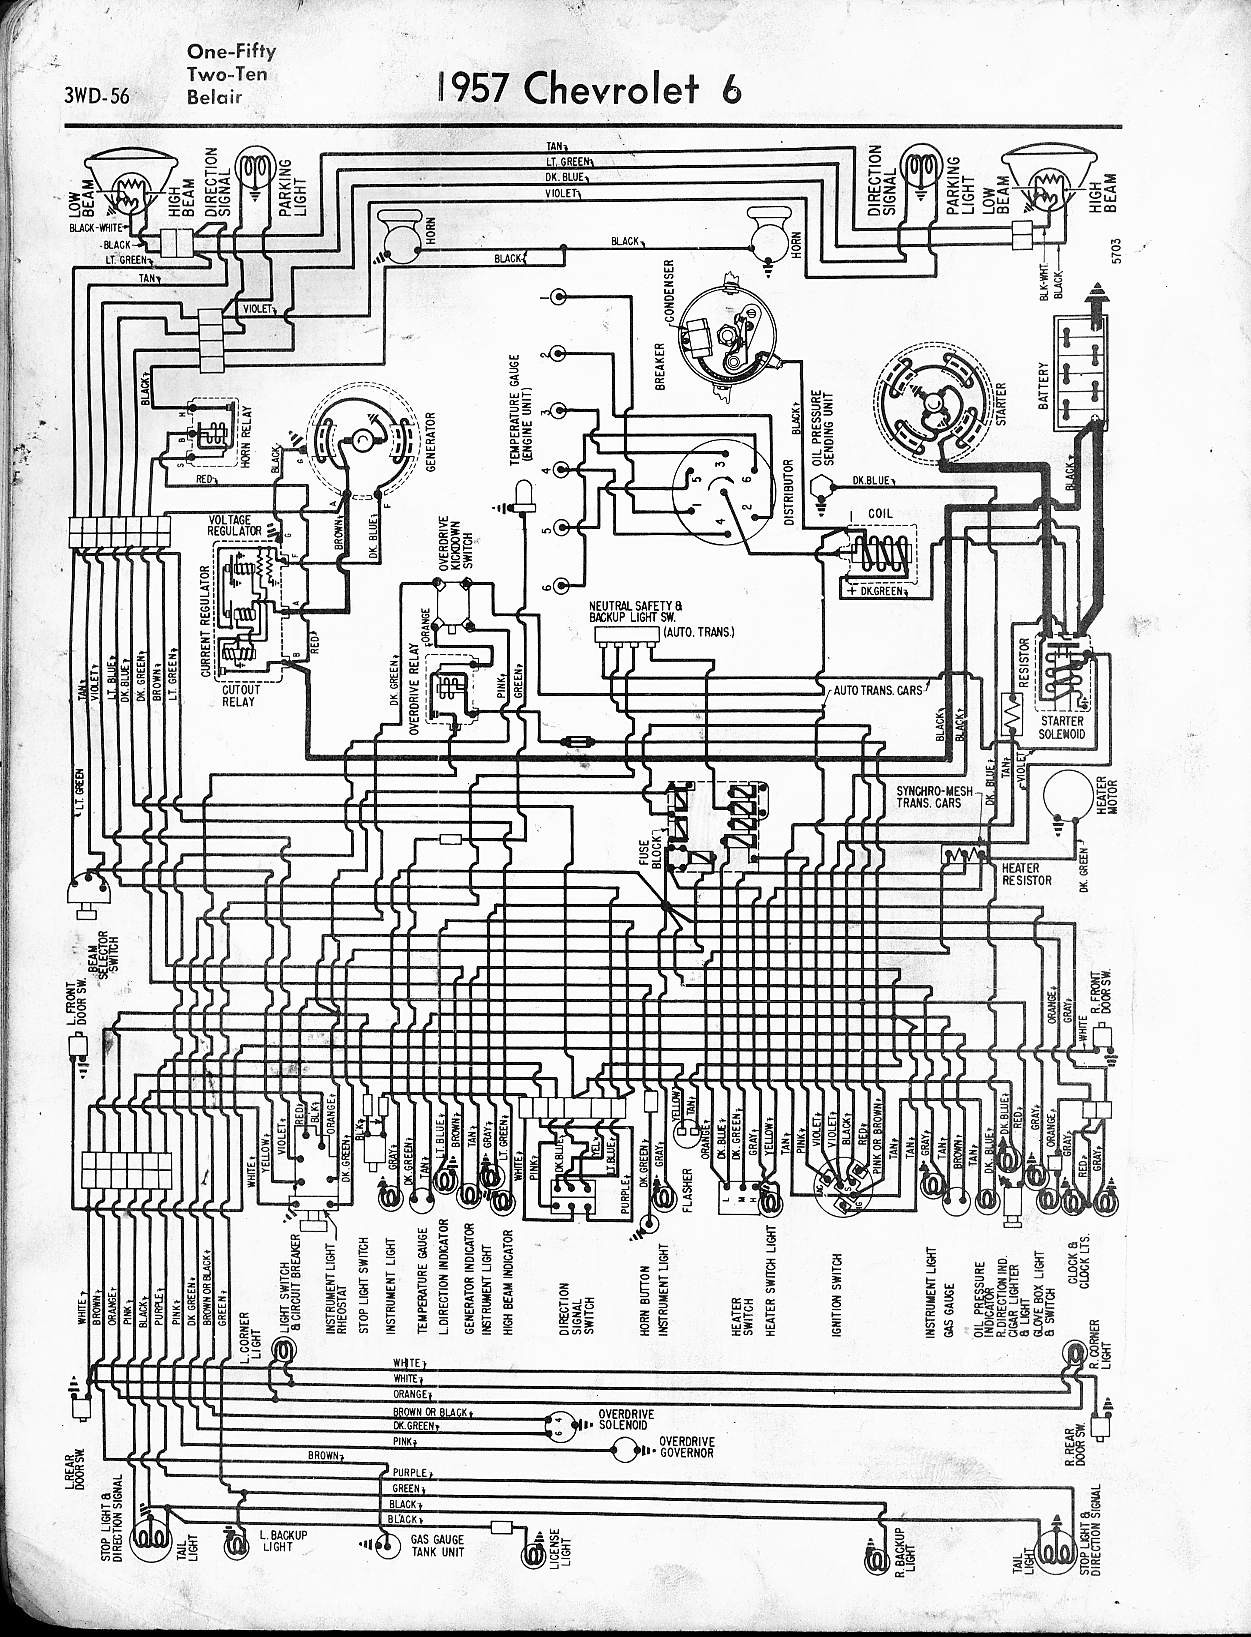 1962 Chevy Truck Wiring Diagram 57 65 Chevy Wiring Diagrams Of 1962 Chevy Truck Wiring Diagram